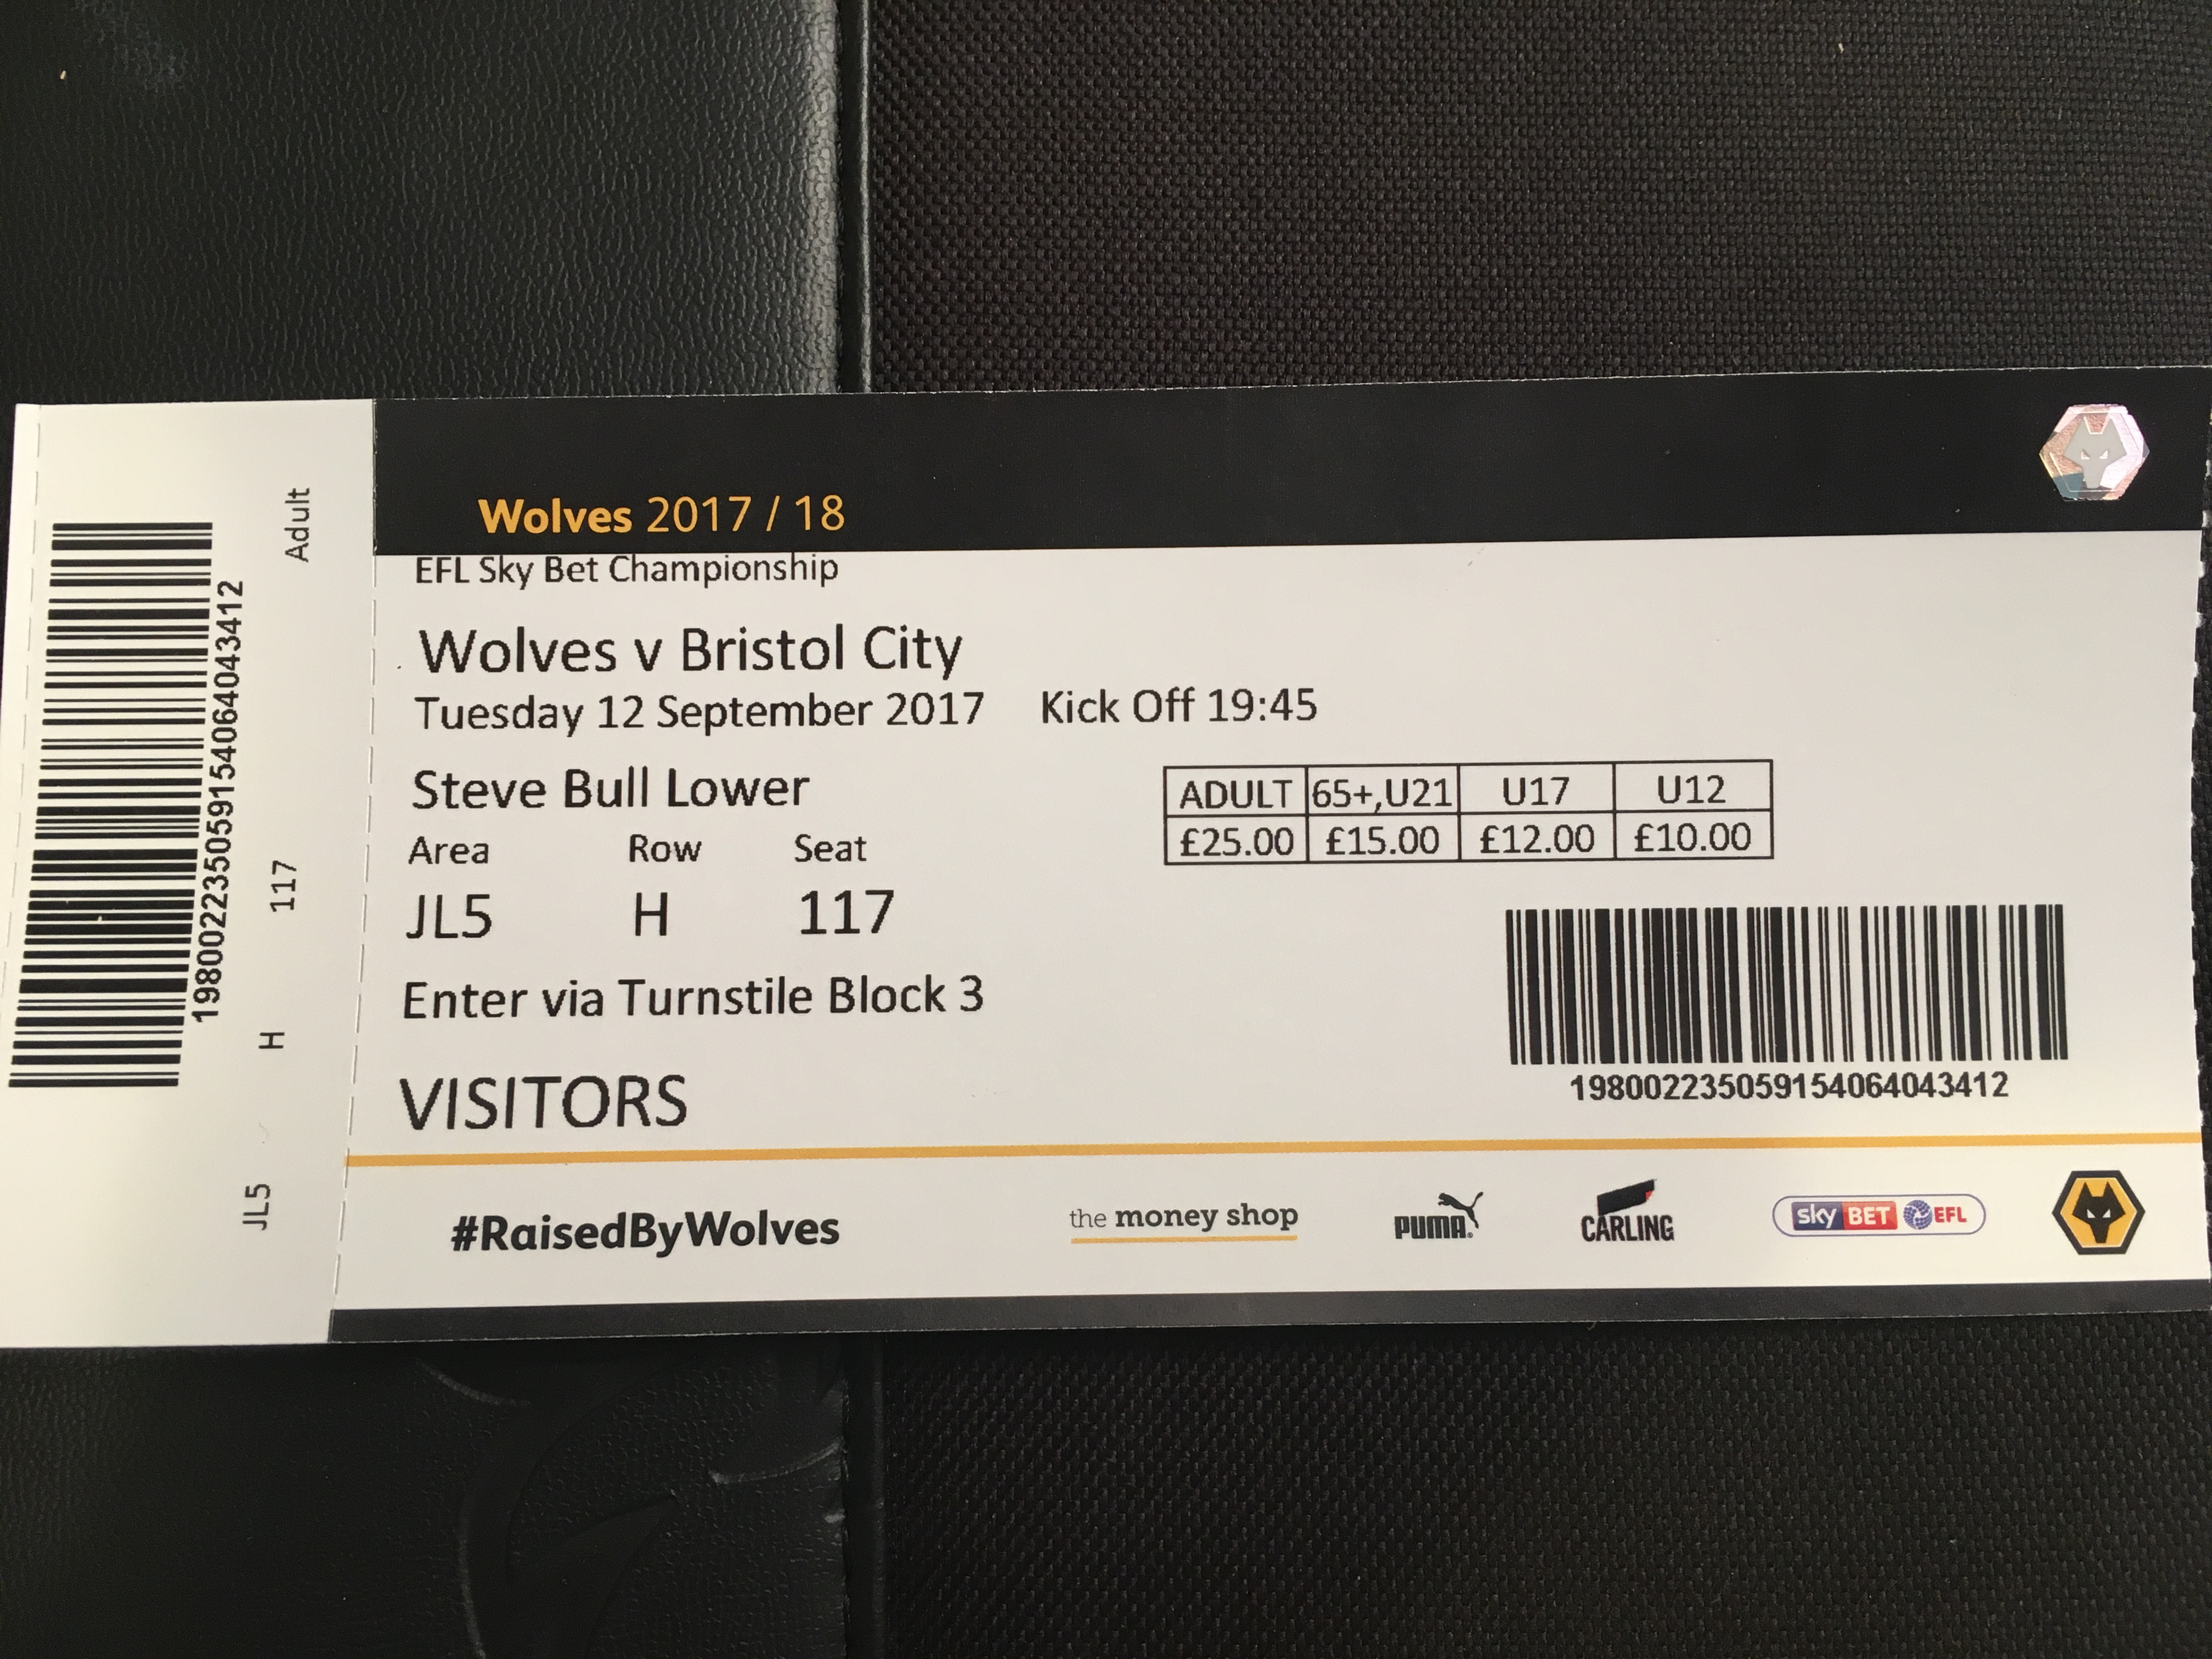 Wolves v Bristol City 12-09-17 Ticket